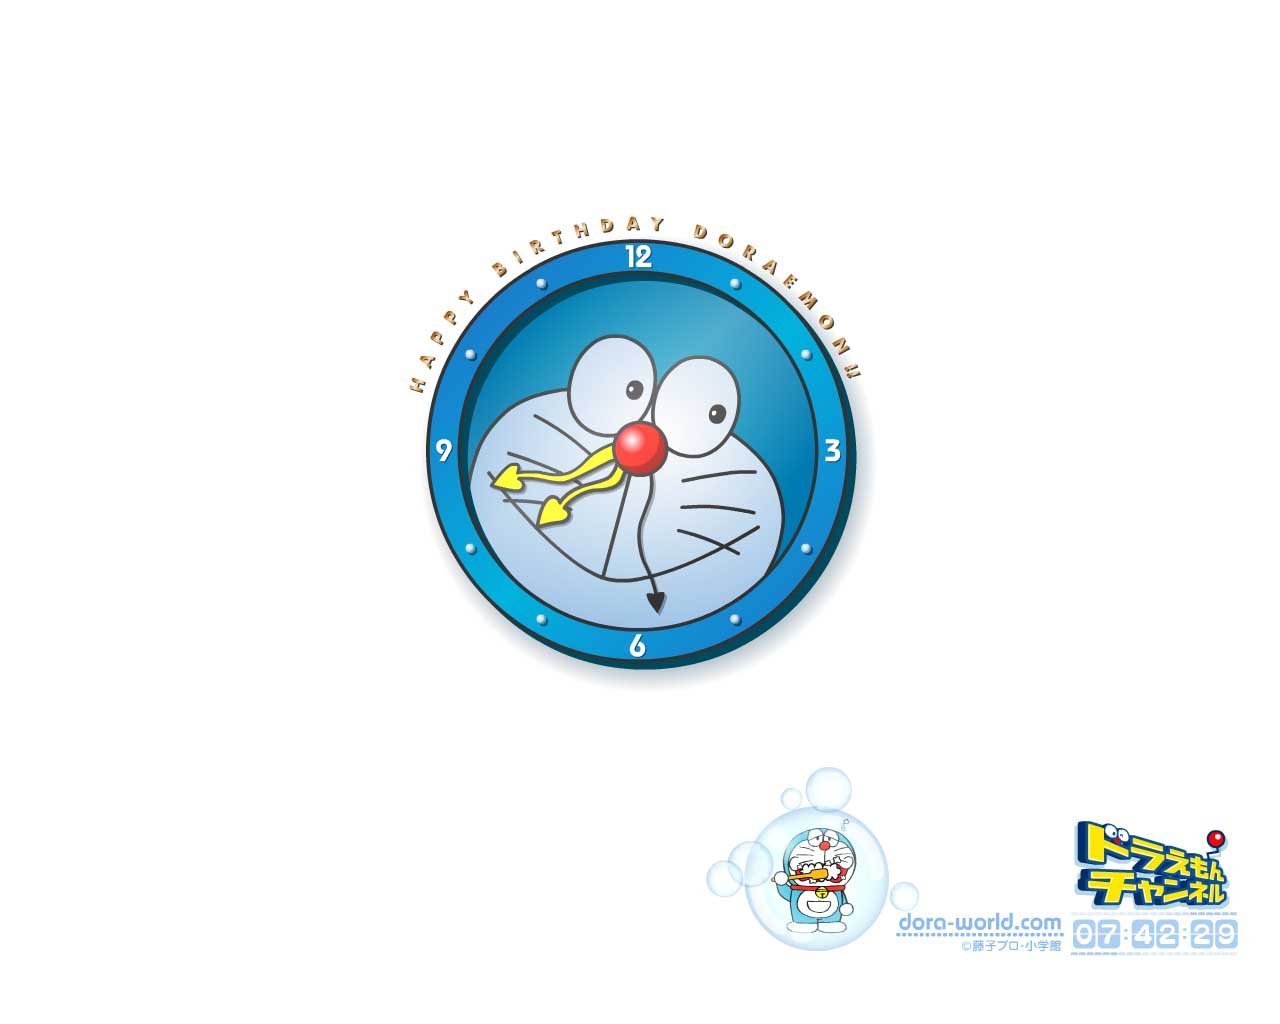 Wallpaper Lucu Doraemon 1280 x 1024 71 kB jpeg